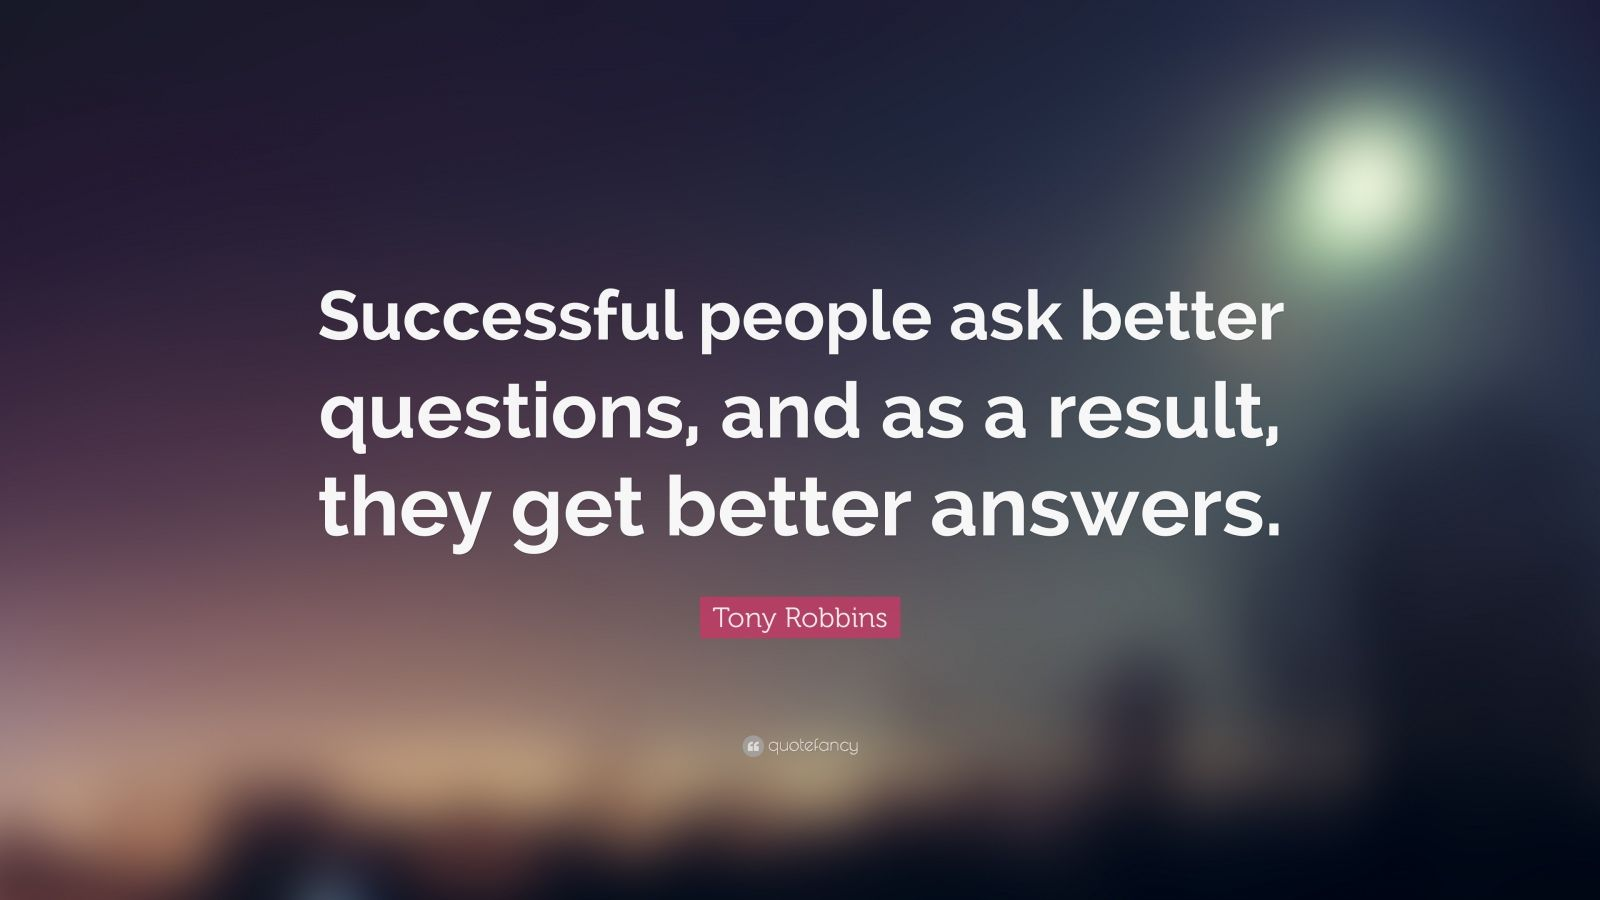 tony robbins quotes quotefancy tony robbins quote successful people ask better questions and as a result